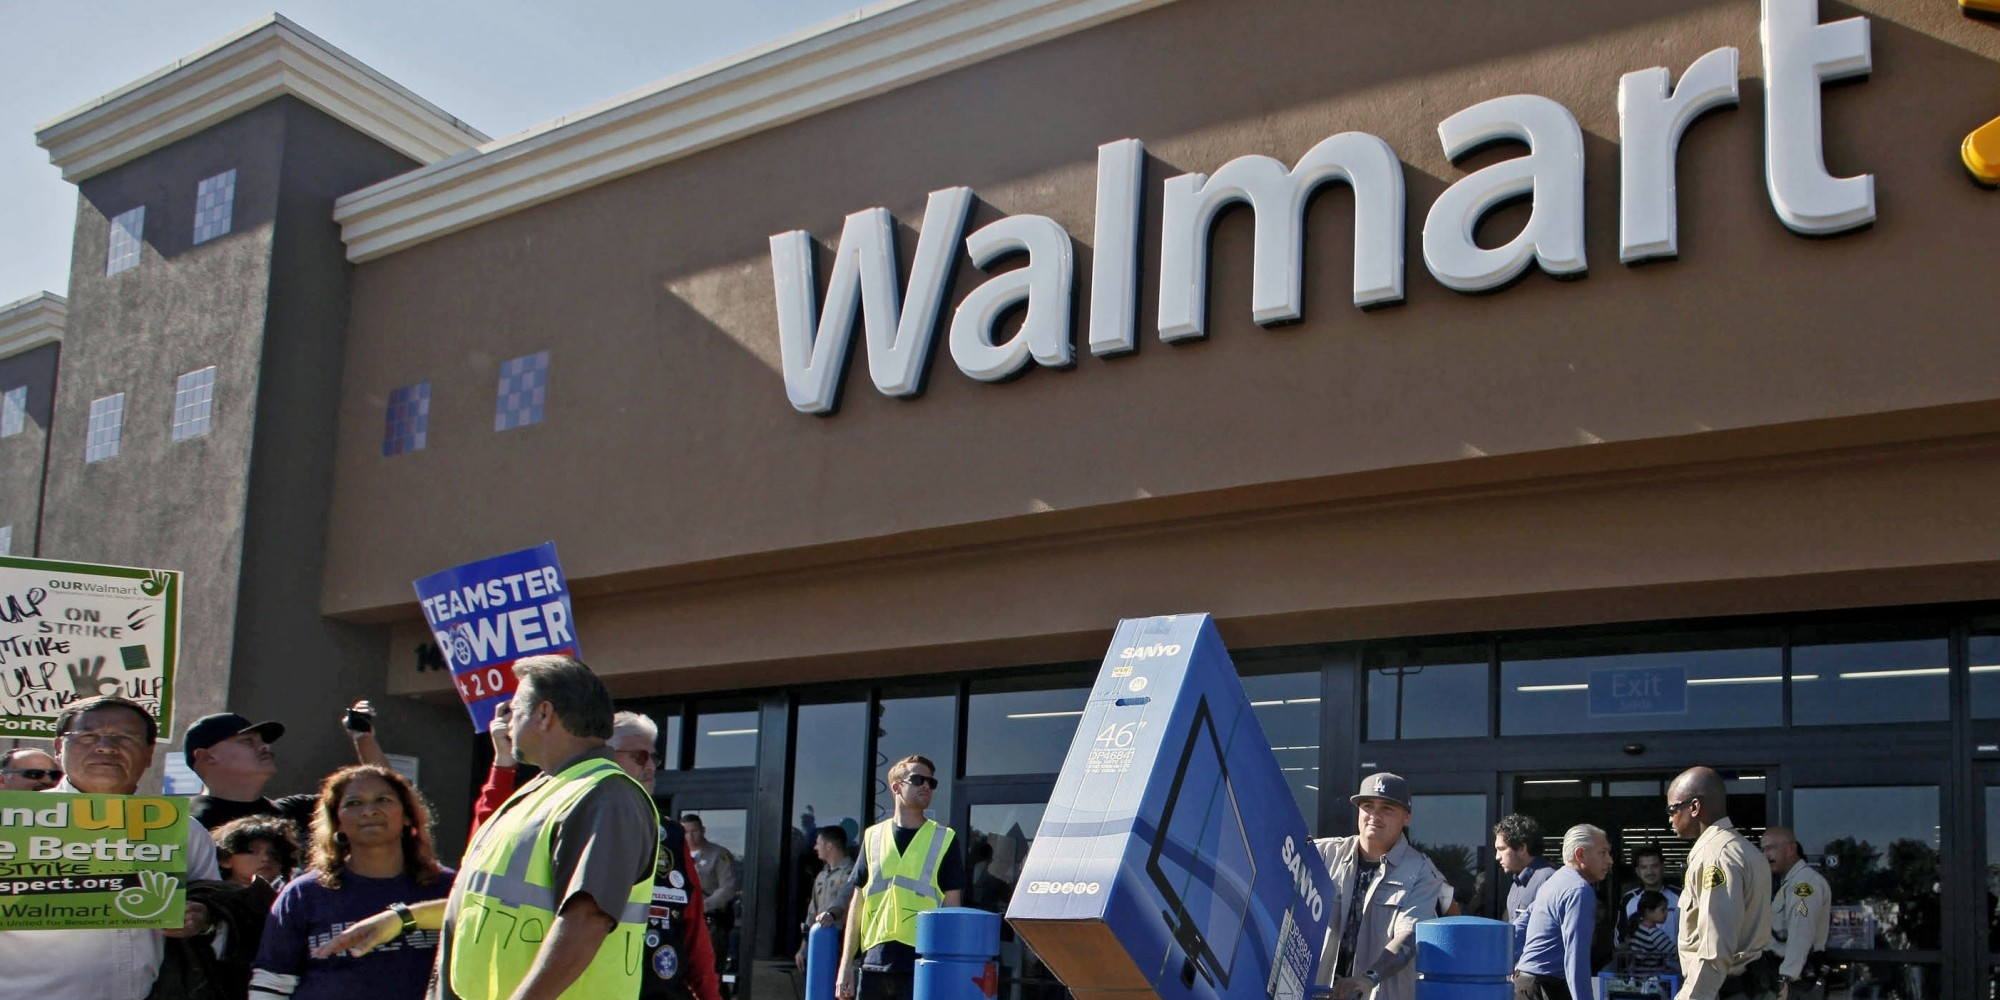 An Argumentative Essay the death of ivan illyich essay How is Wal-Mart Bad for the Community?